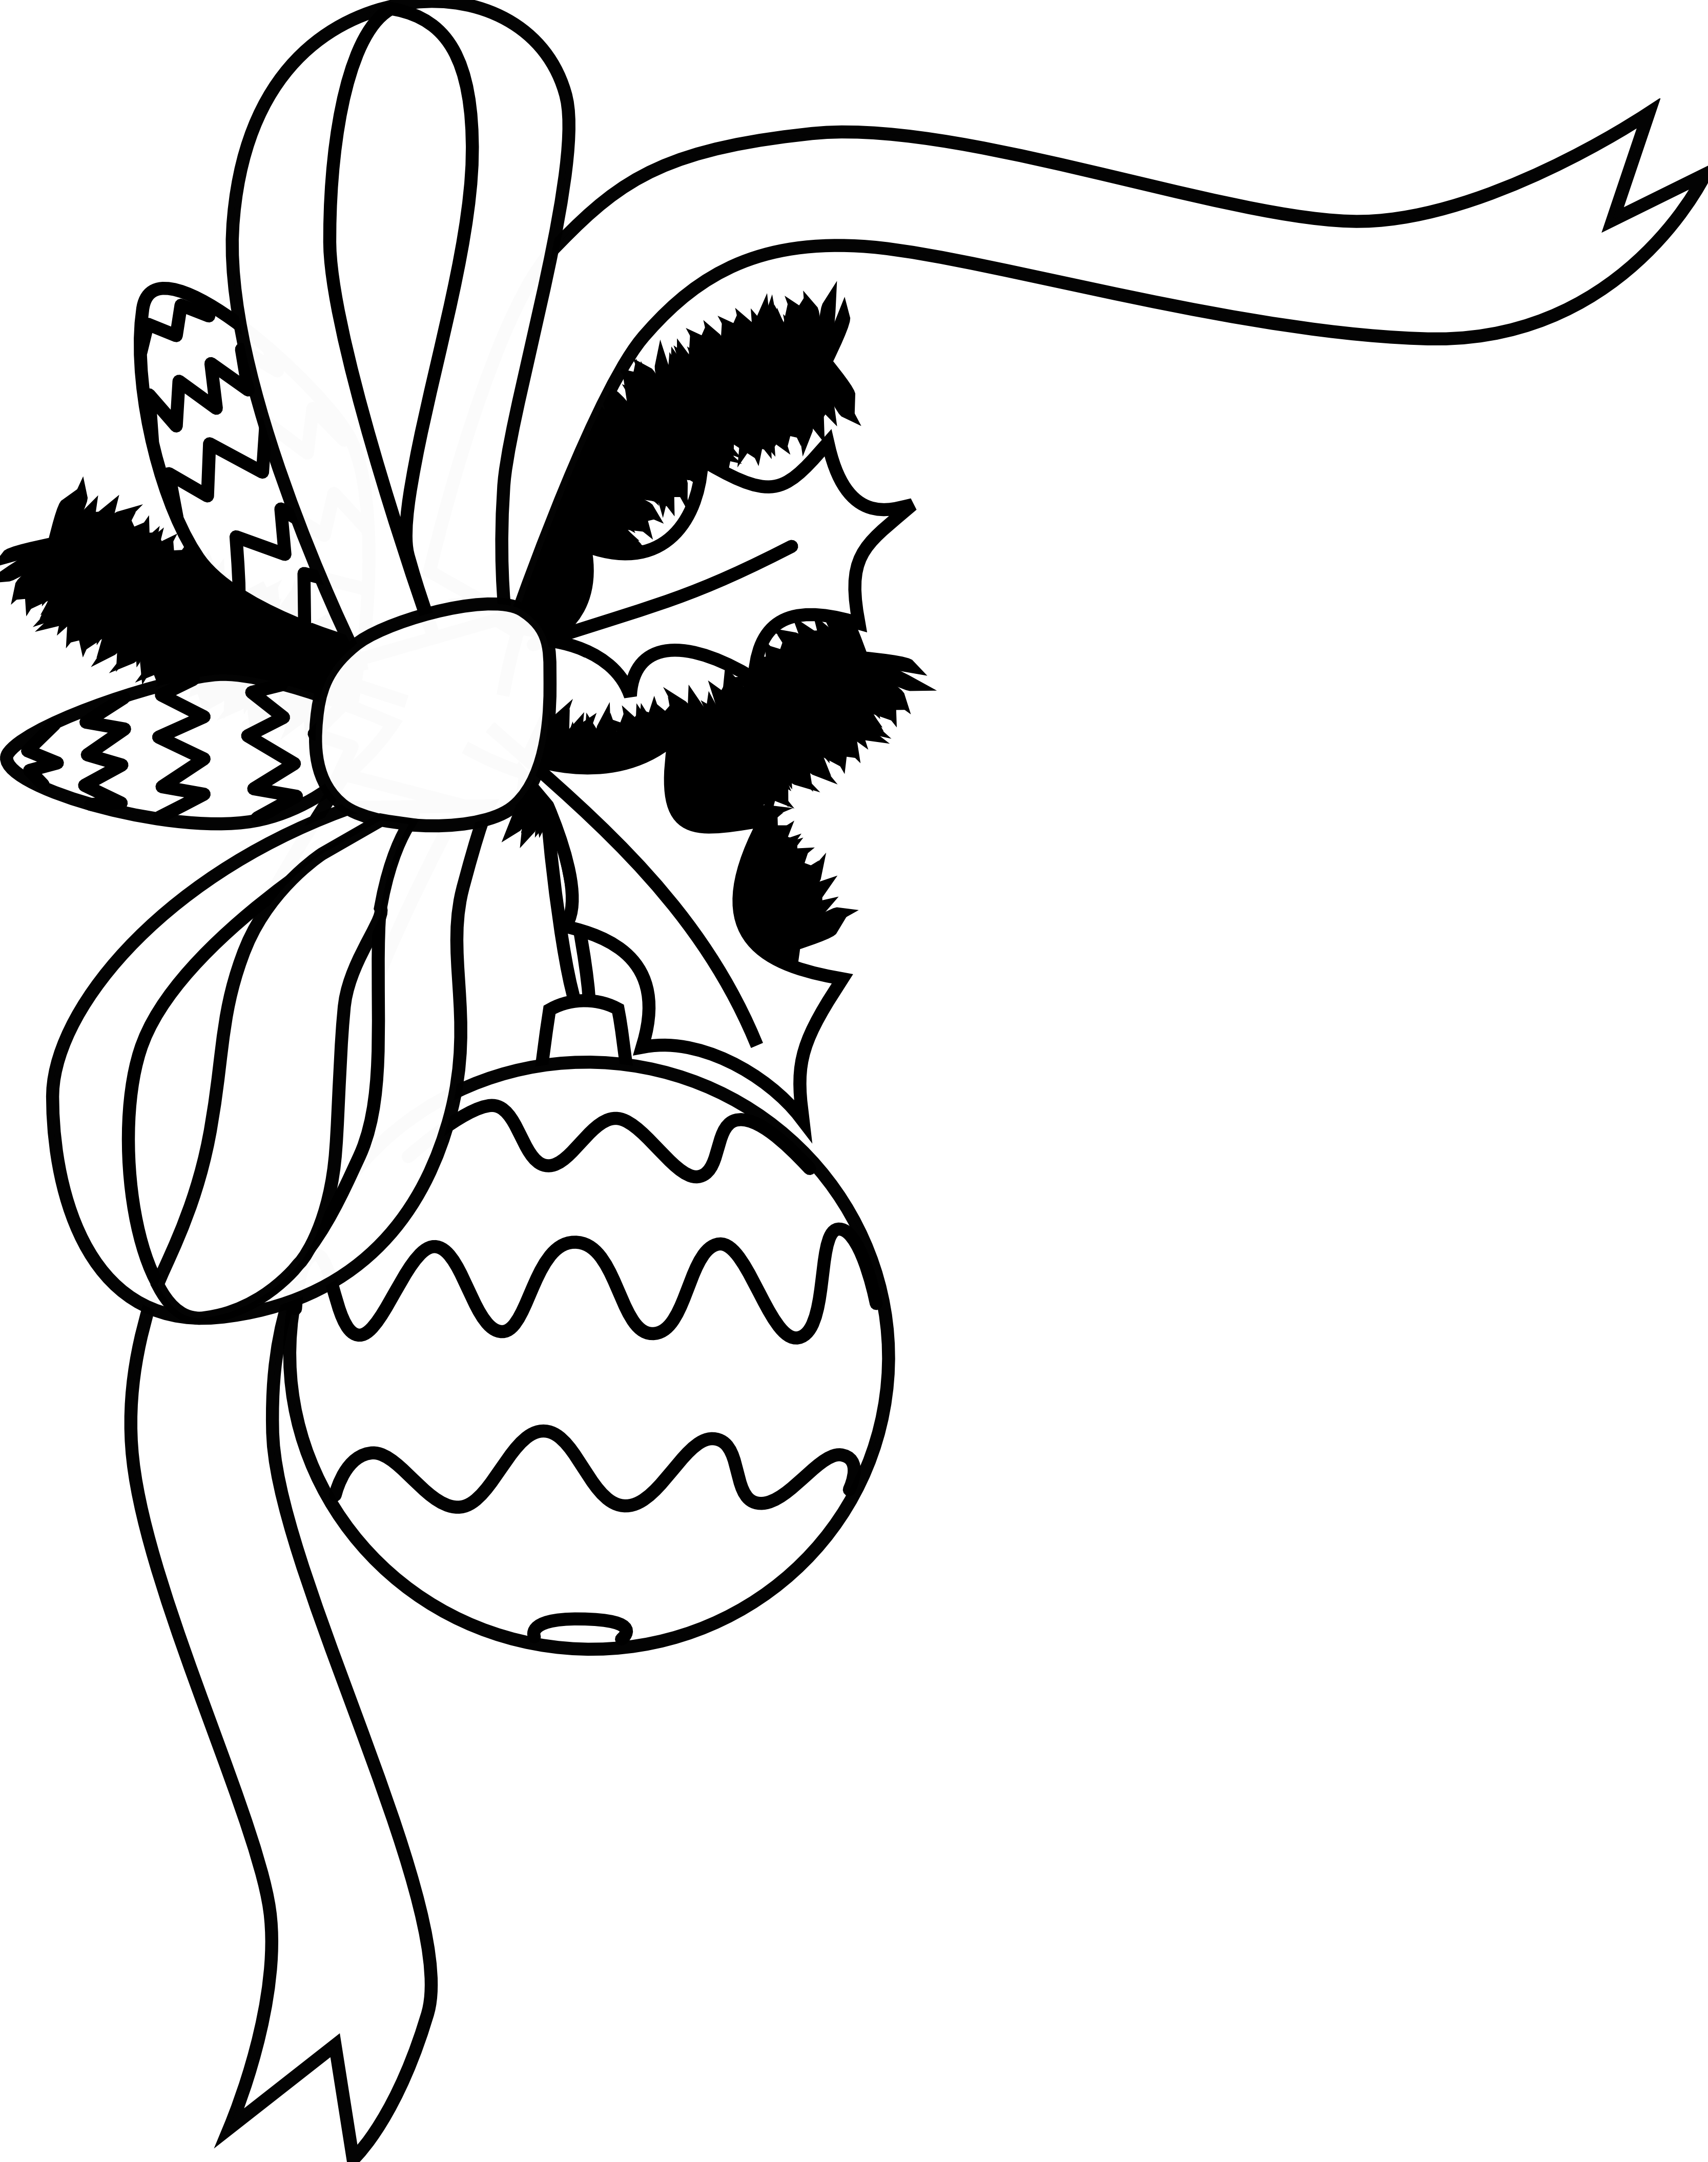 Christmas Border Clipart Black And White-christmas border clipart black and white-4